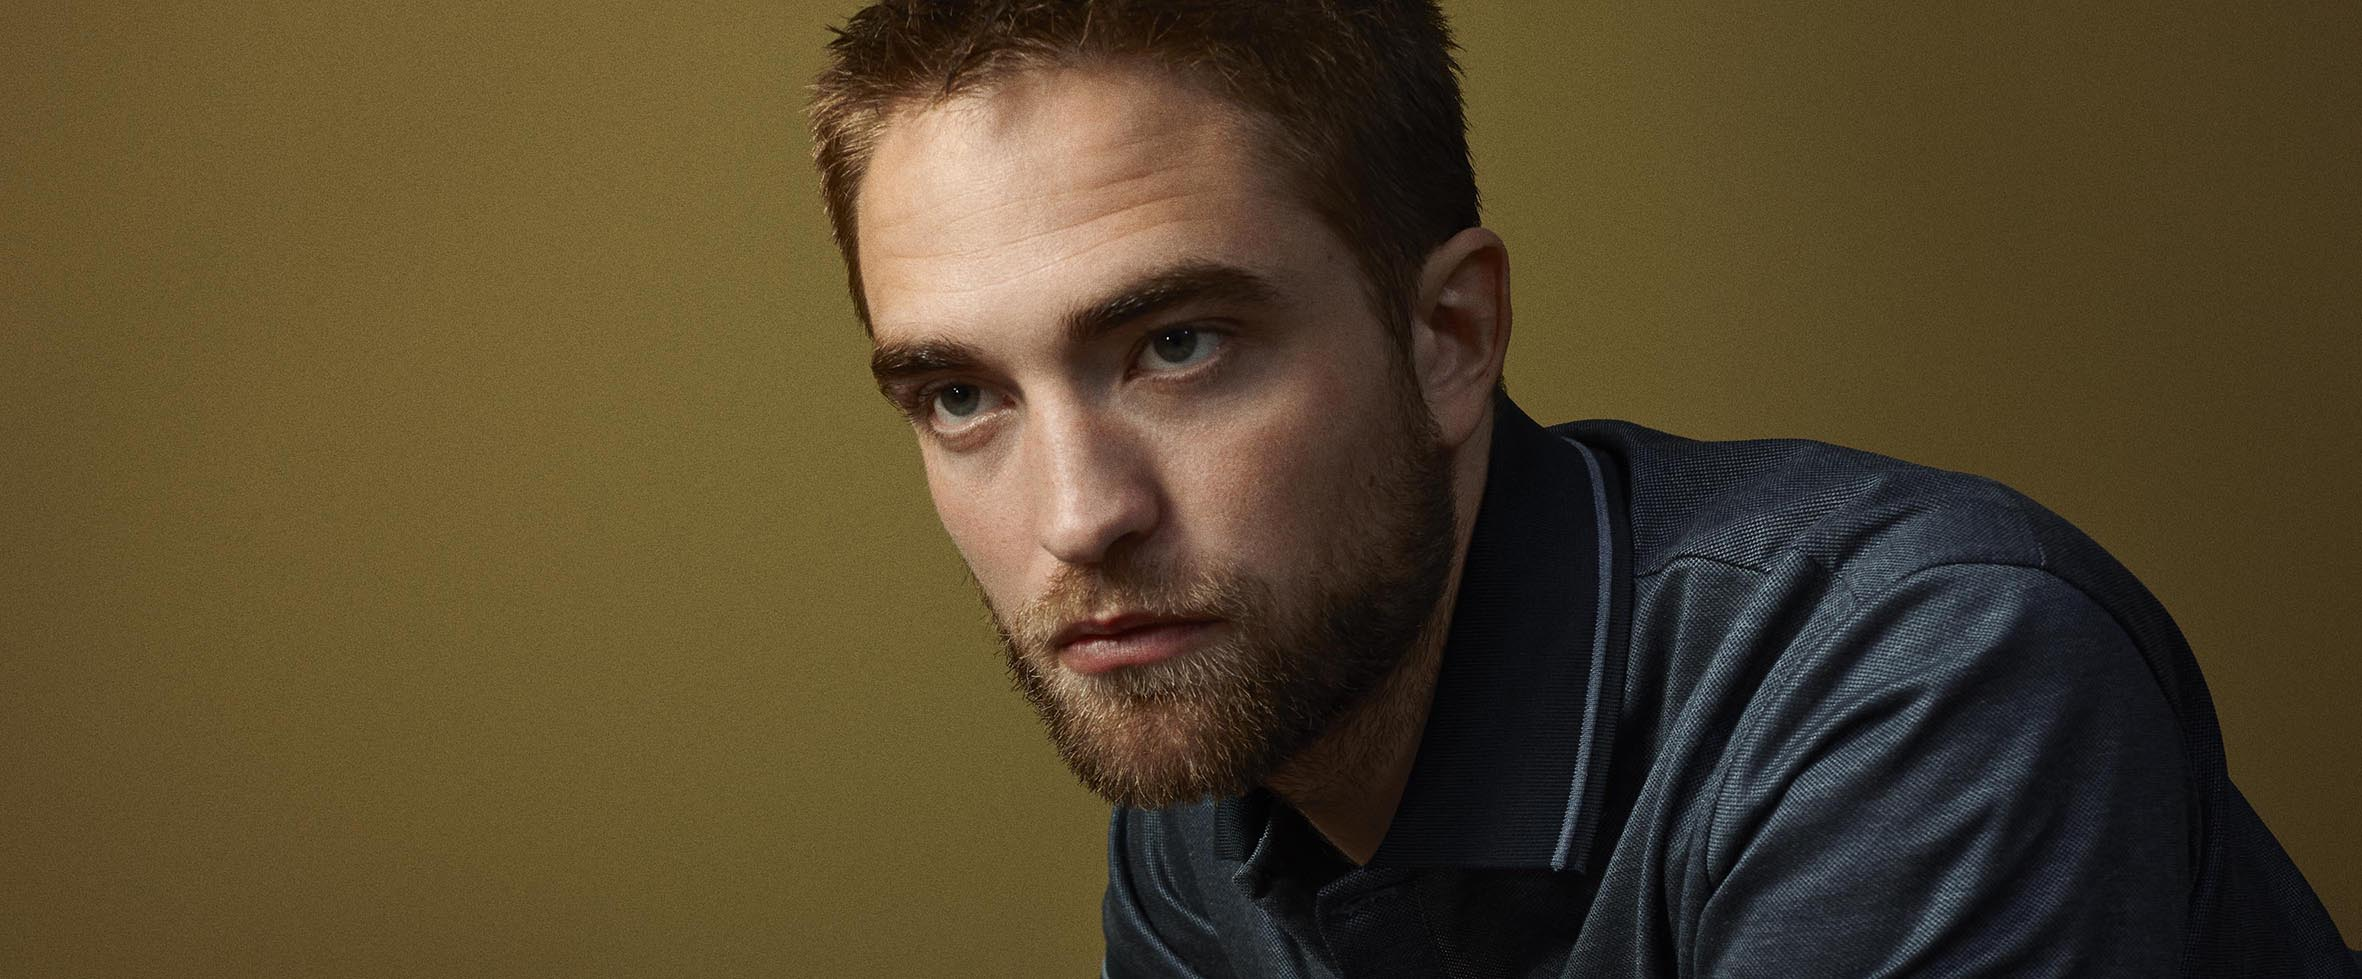 DIOR / ROBERT PATTINSON / ERIC NEHR